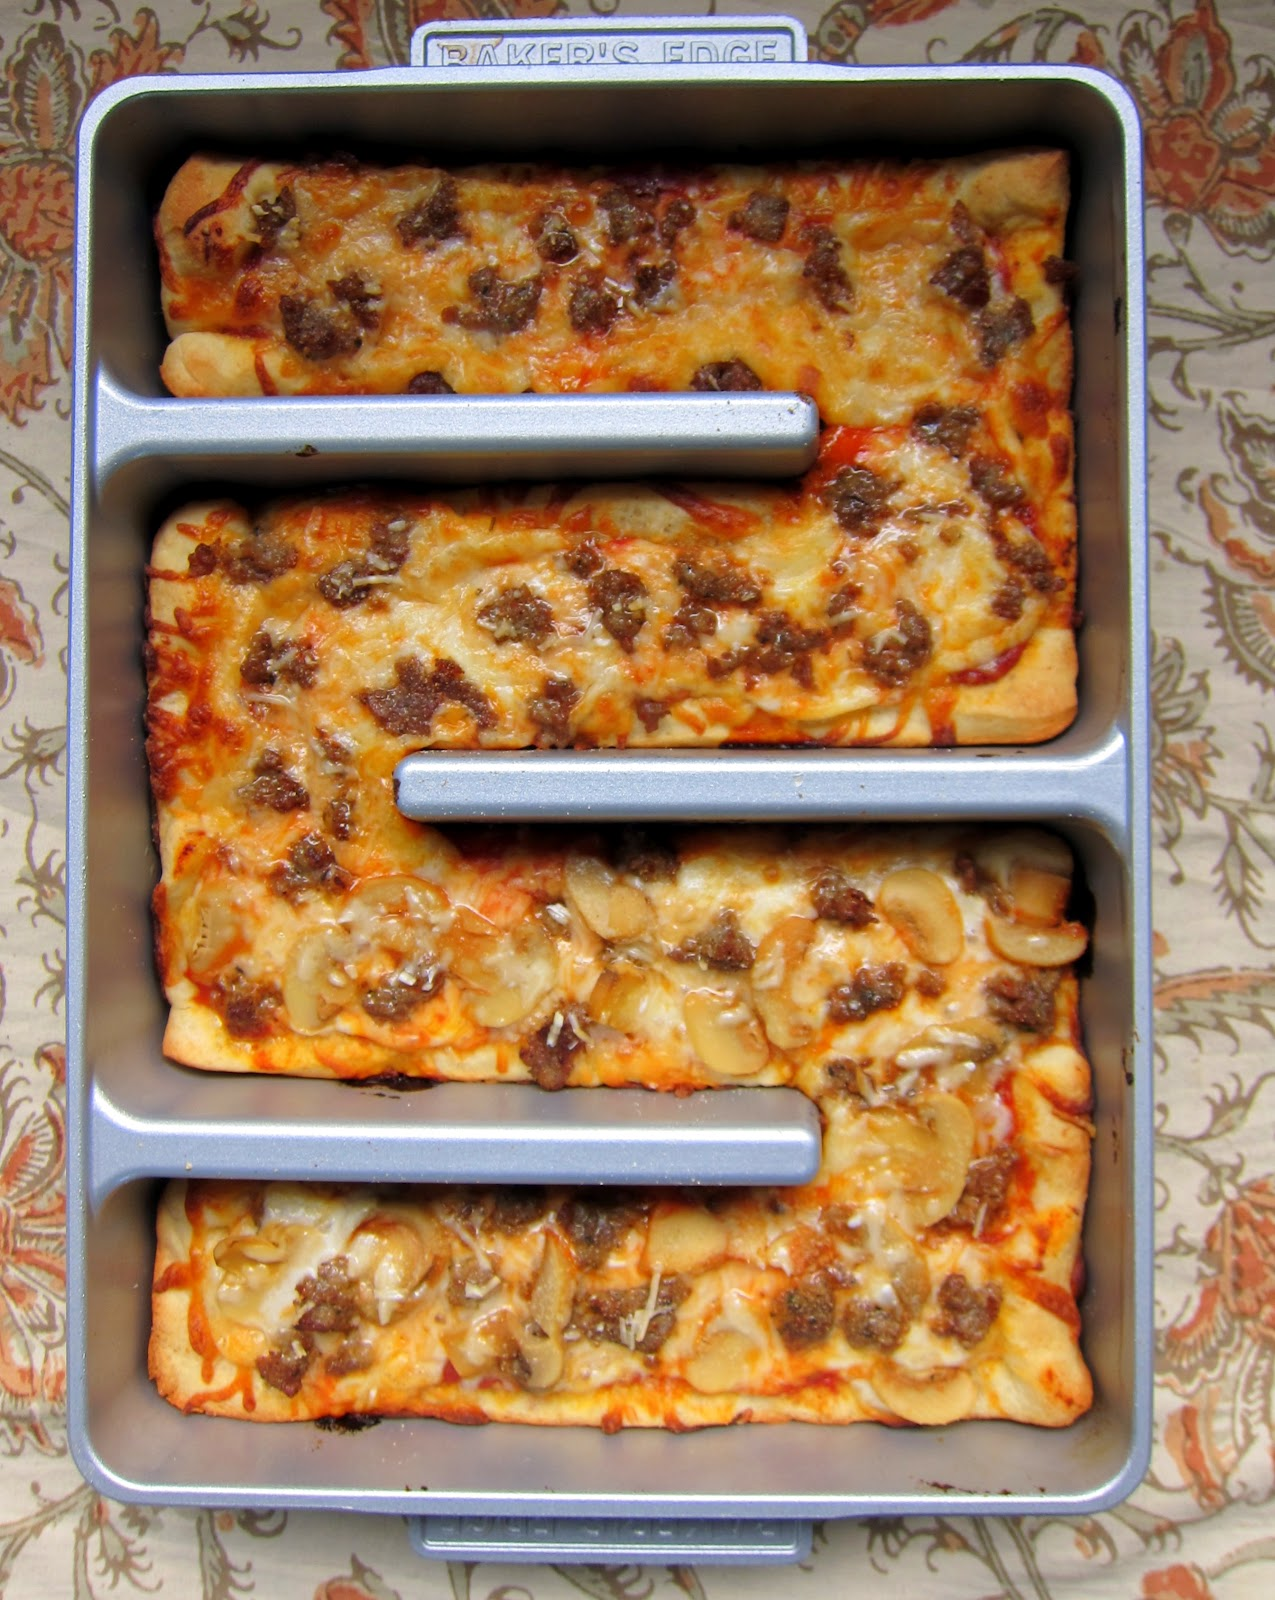 Brownie Pan Pizza with Homemade Pizza Sauce - Plain Chicken